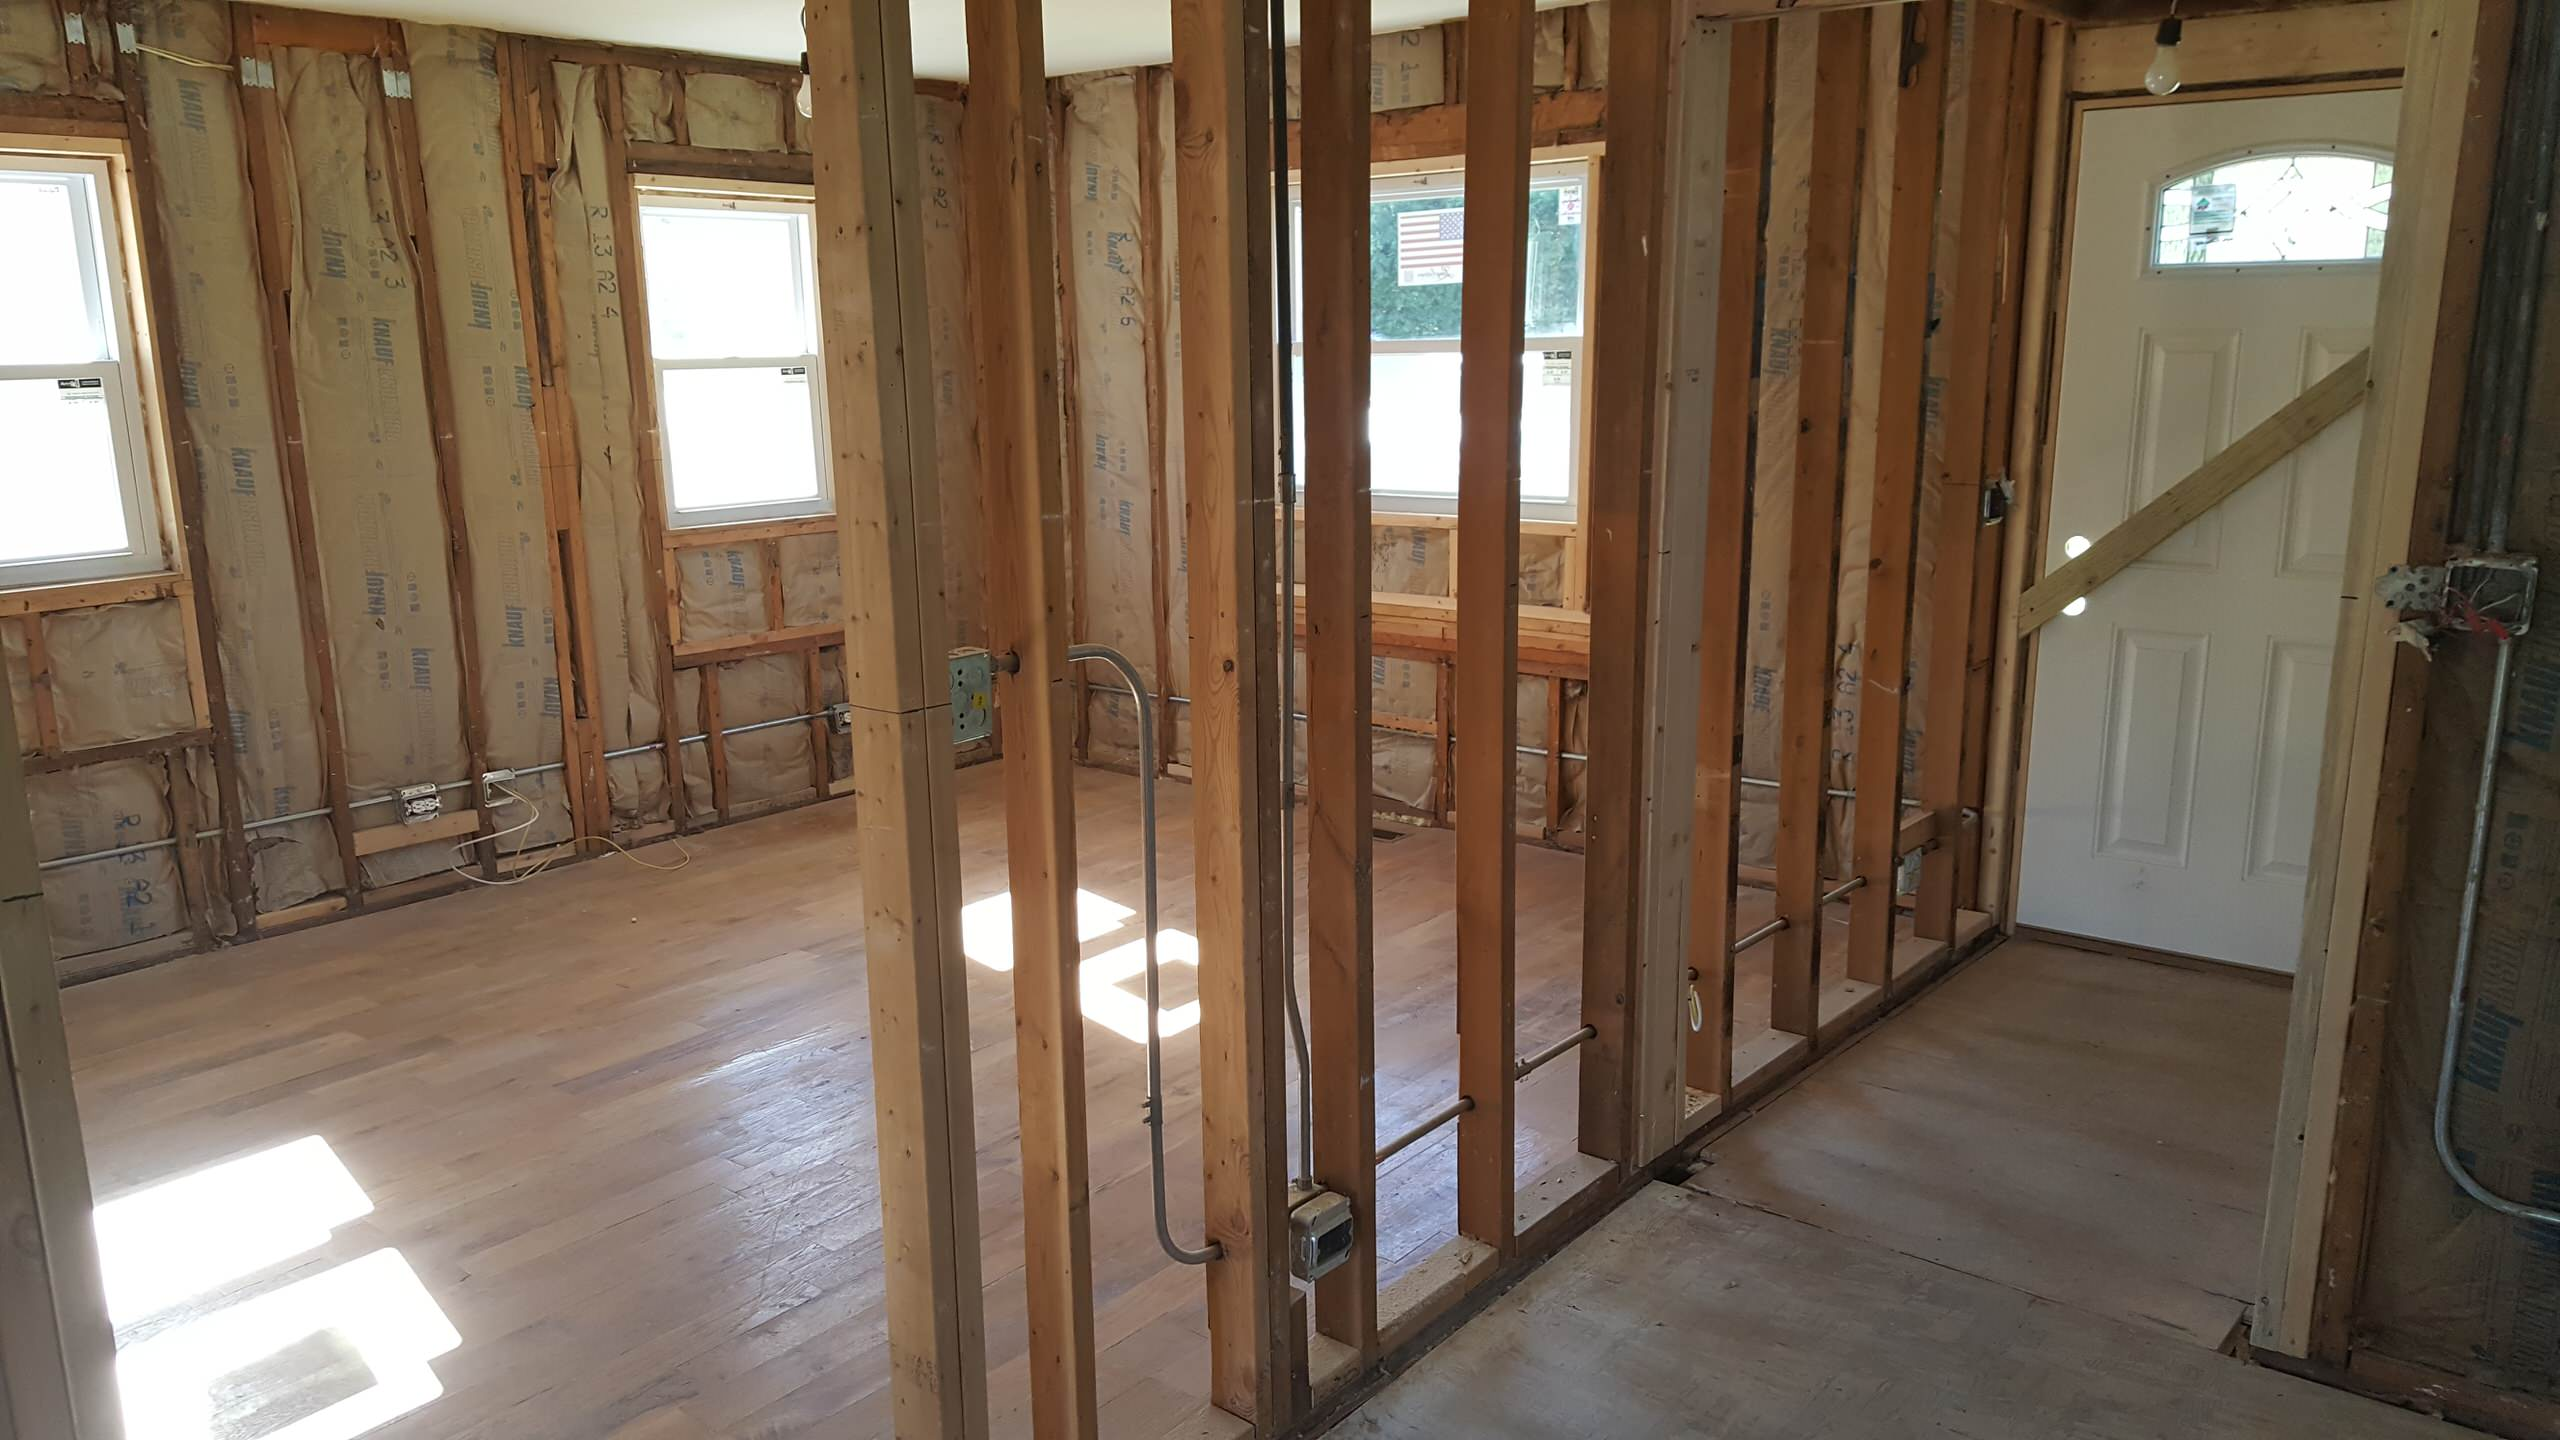 Cottage in early remodel/rehab stages